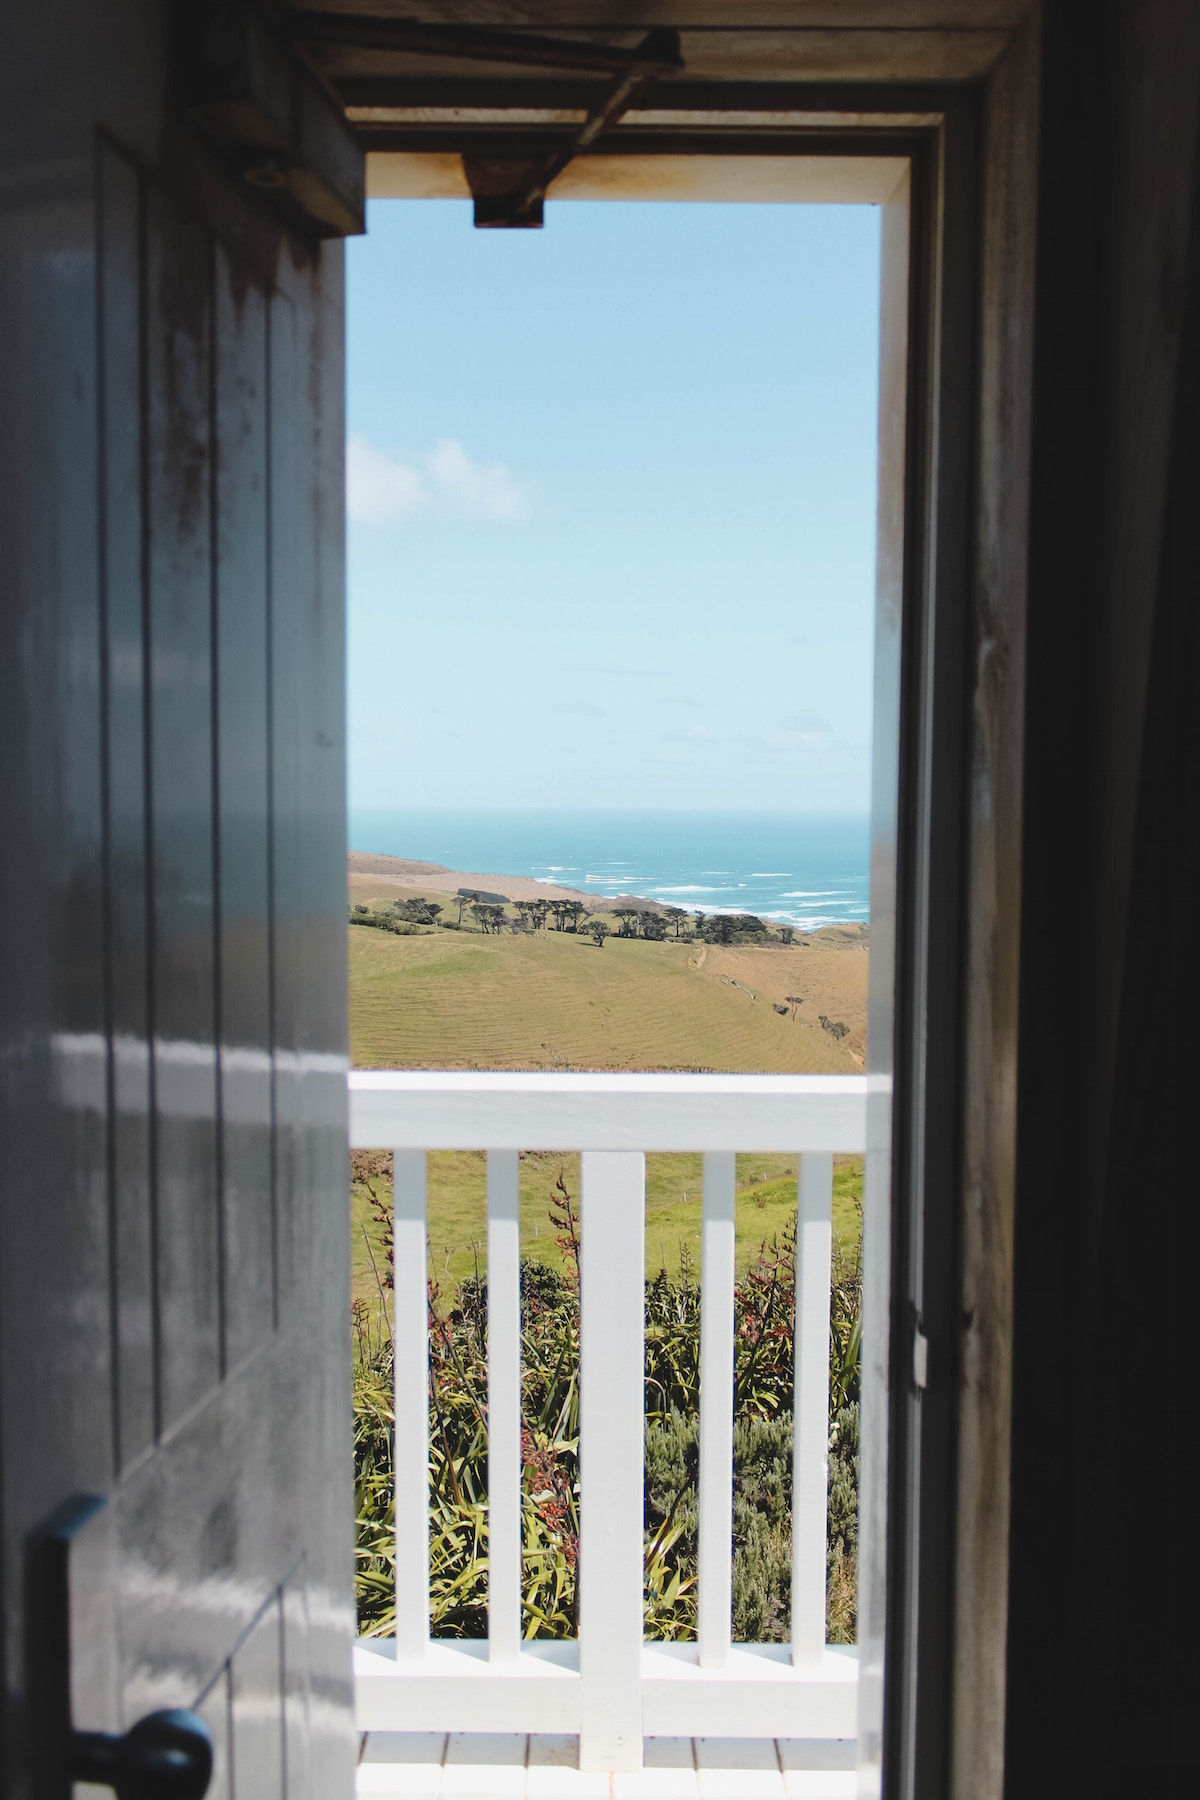 A door opening to a porch with a white railing, overlooking a hill and blue water